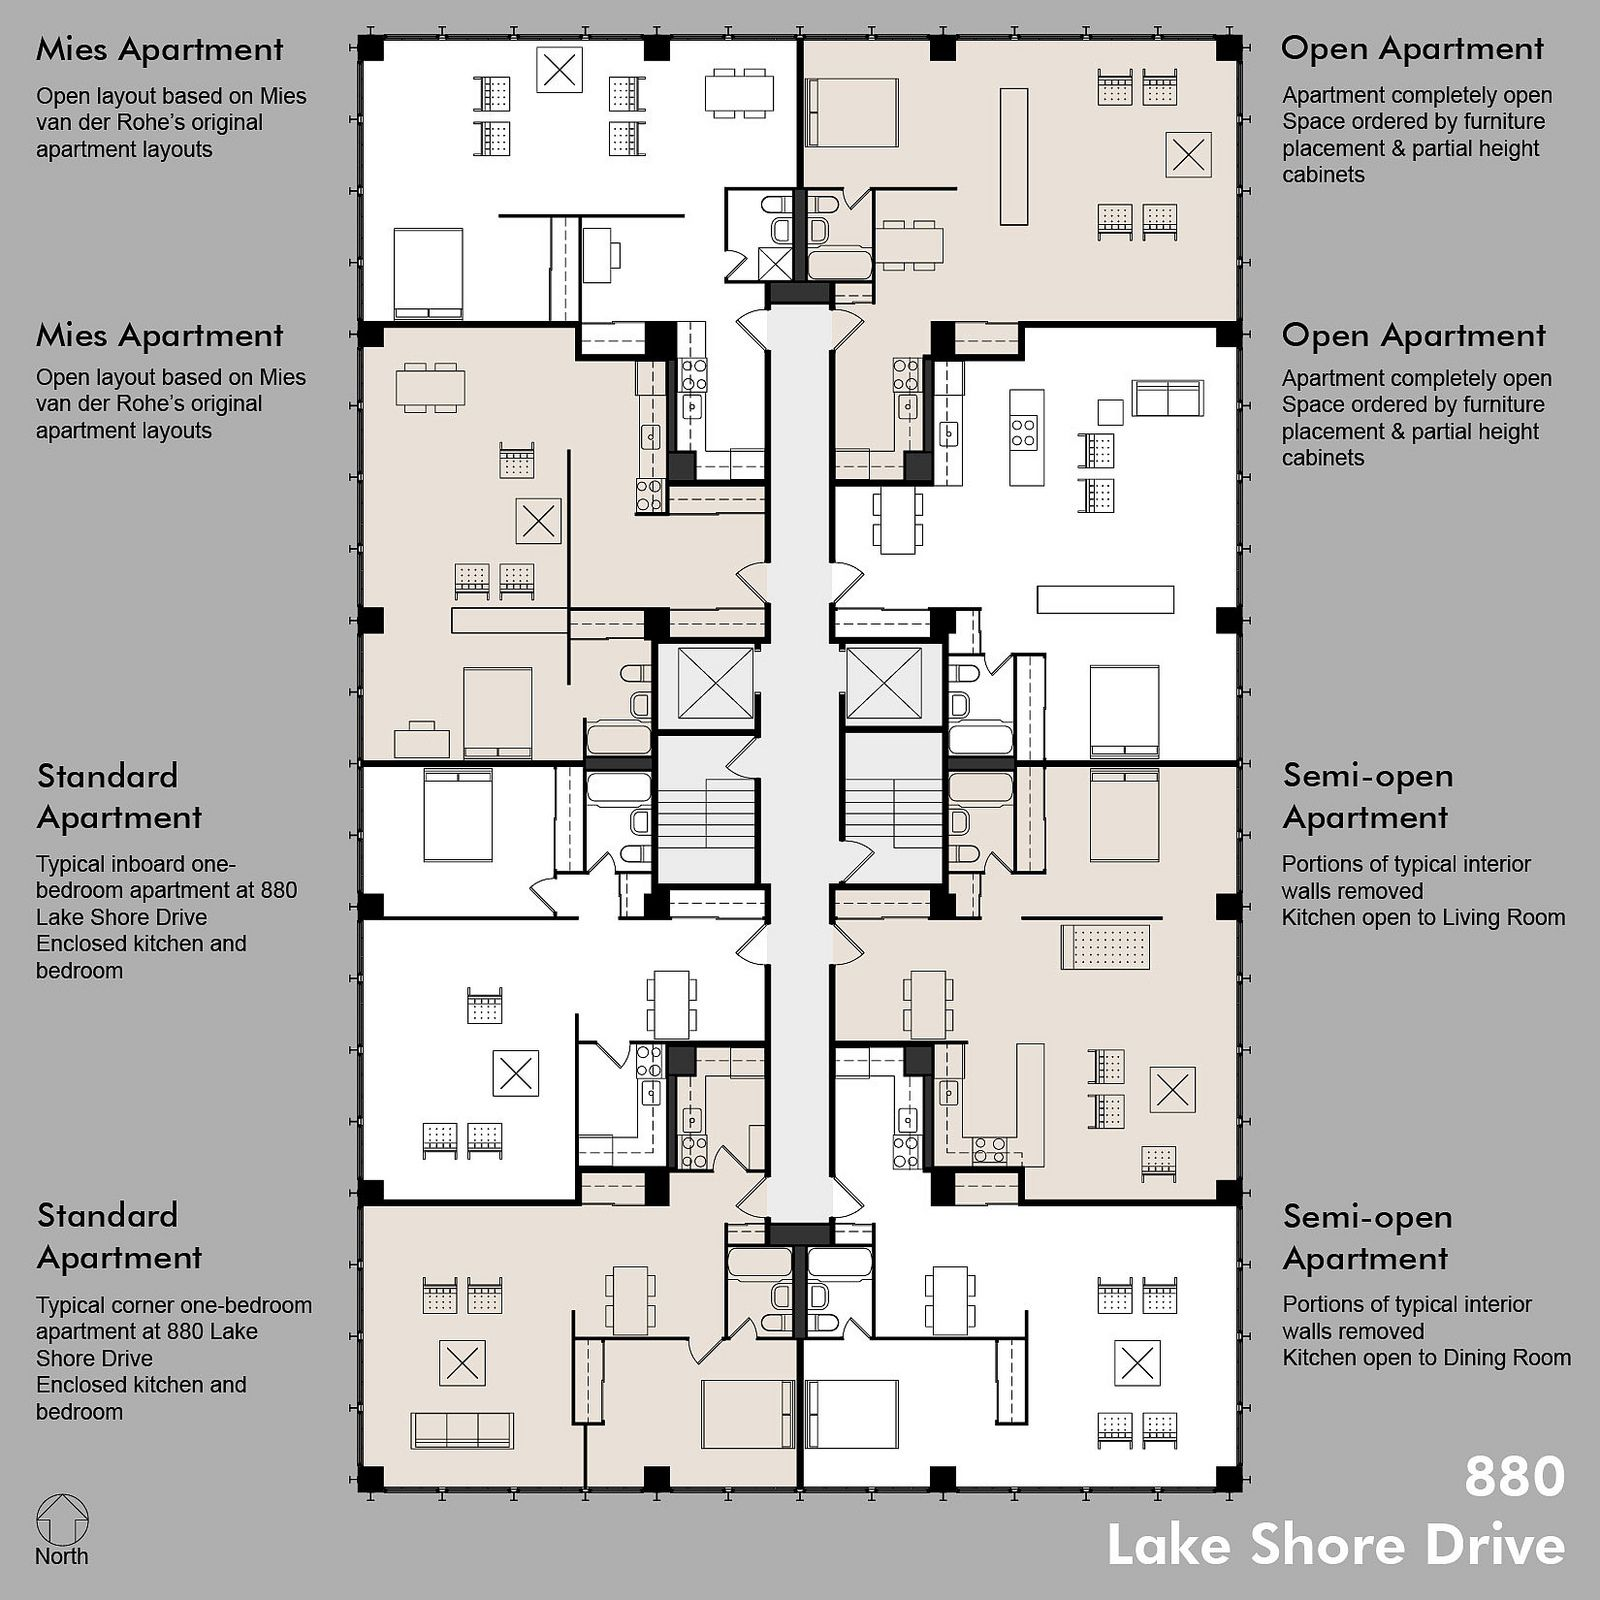 Apartment Plan Possibilities Floor Plan Design Apartment Floor Plans Building Layout